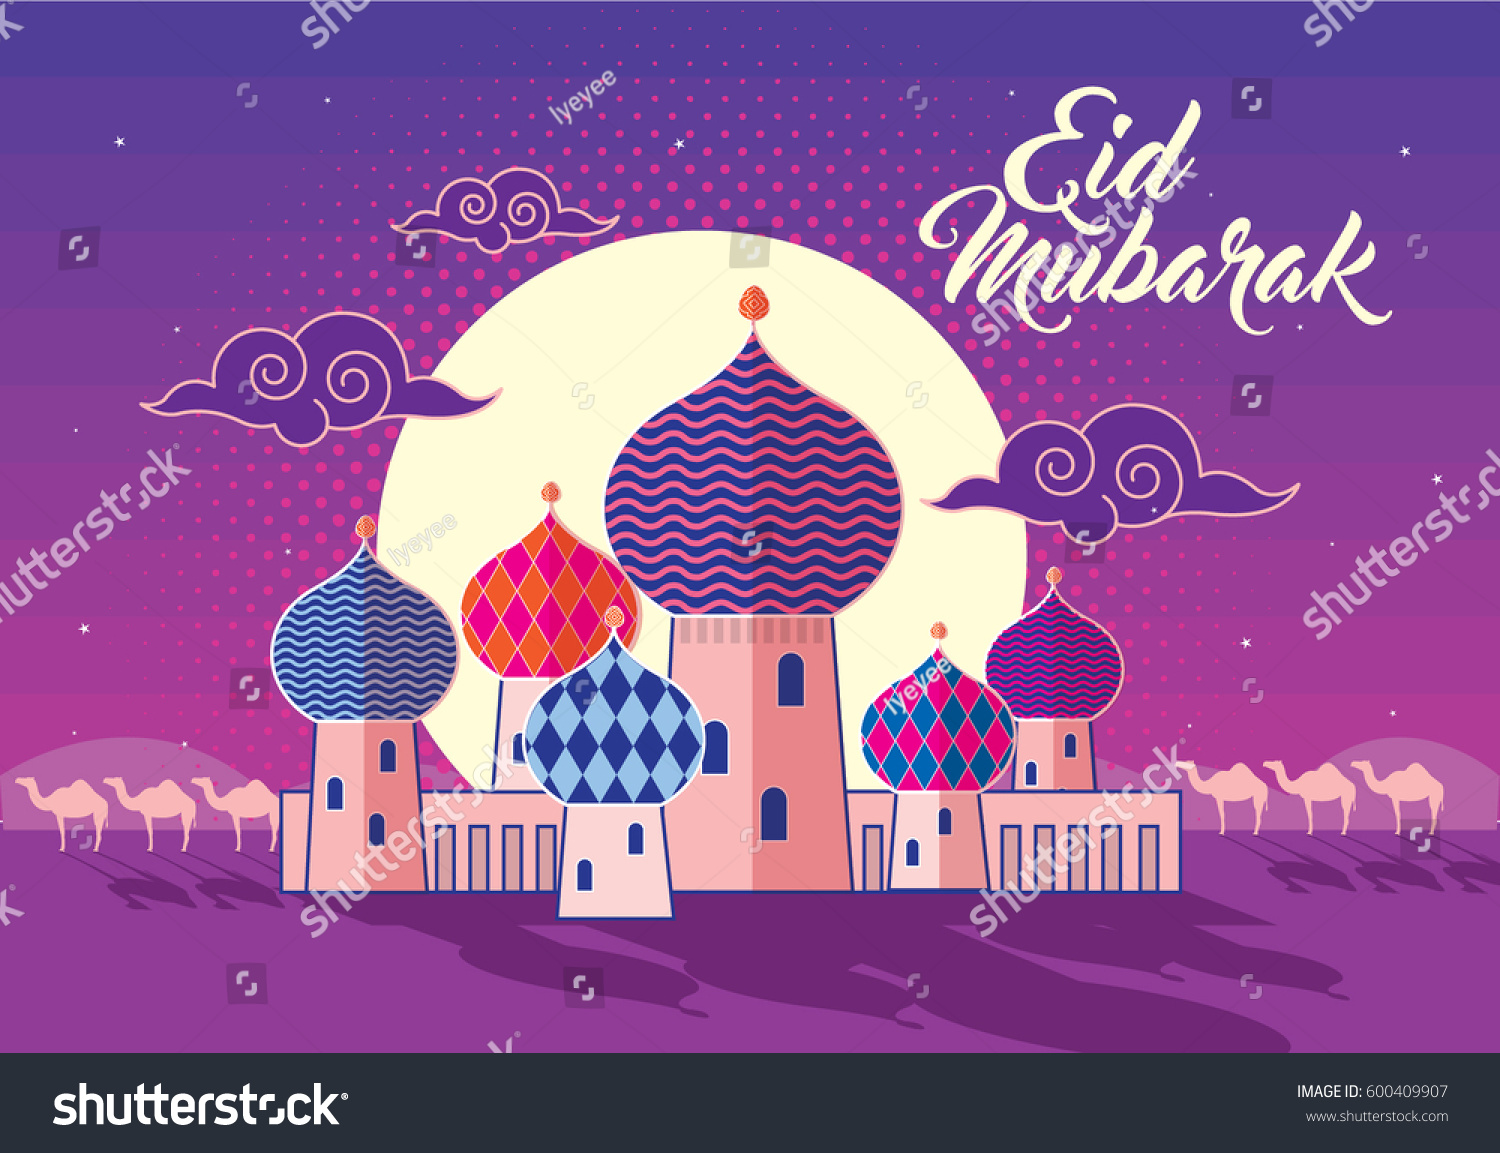 Mosque eid mubarak greetings template vectorillustration stock mosque eid mubarak greetings template vectorillustration eid mubarak is translated to blessed kristyandbryce Image collections